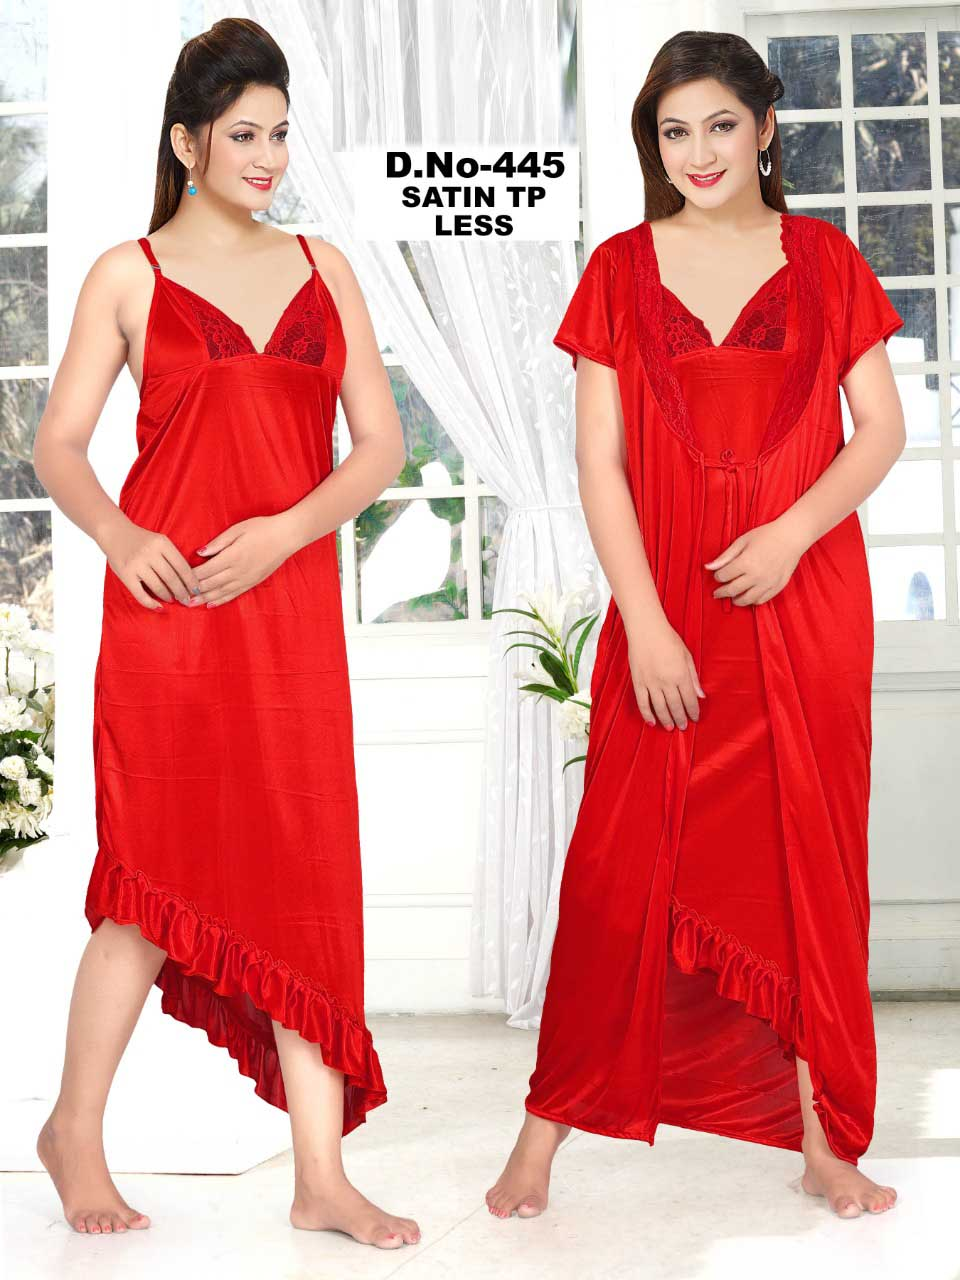 SATIN TWO PIECE NIGHTY-RED-KC MAY 445